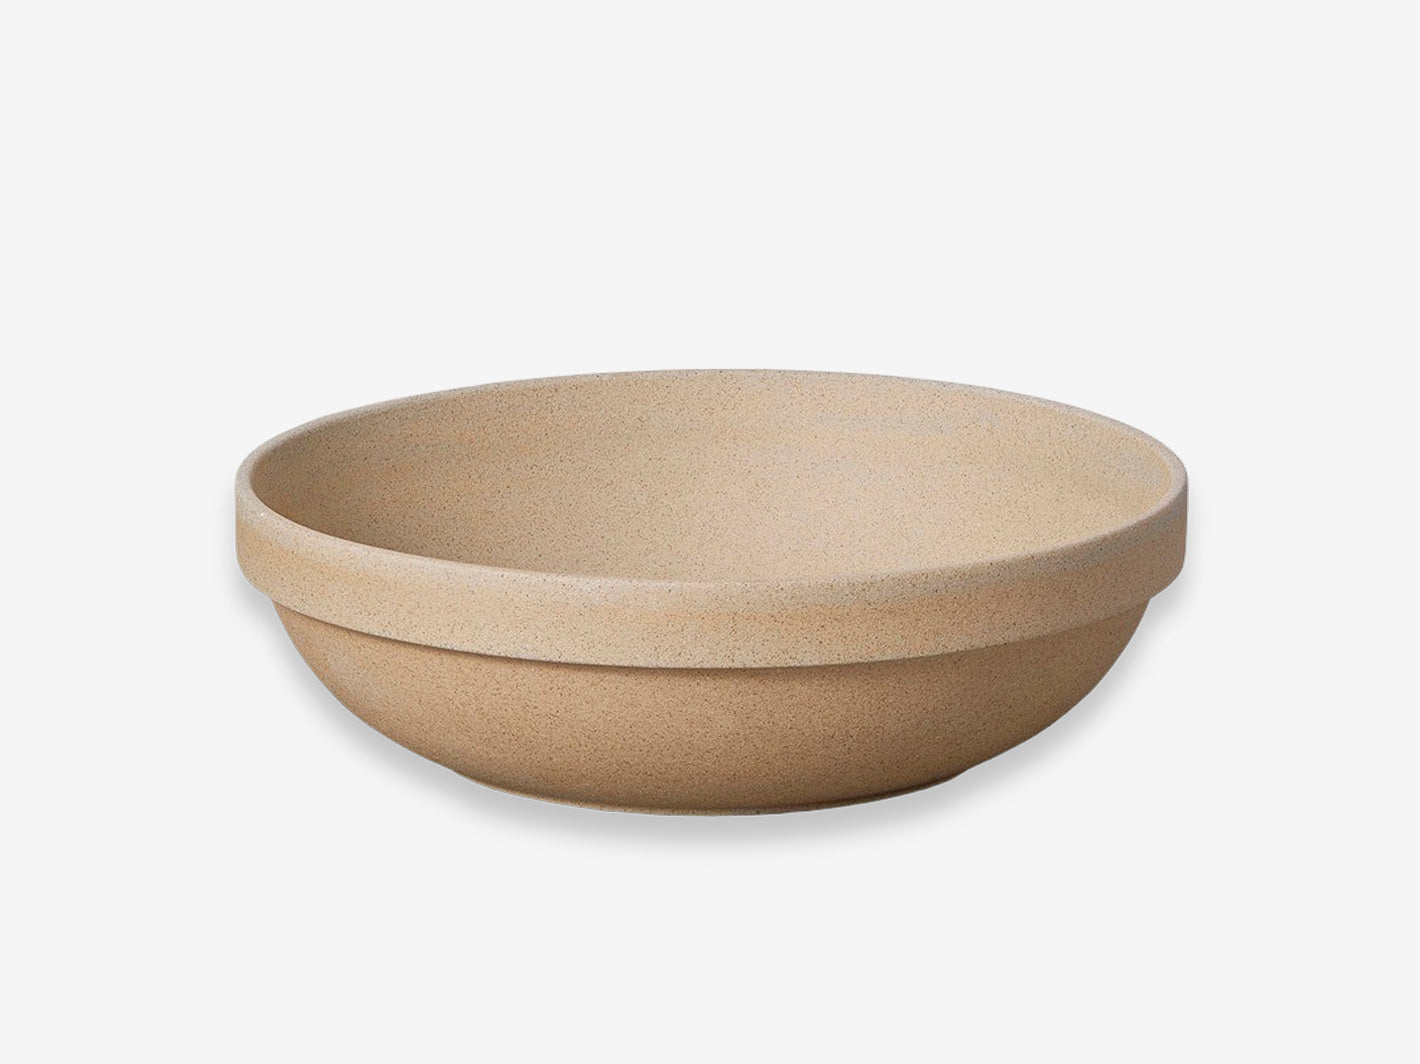 Bowl Round Natural 185x55